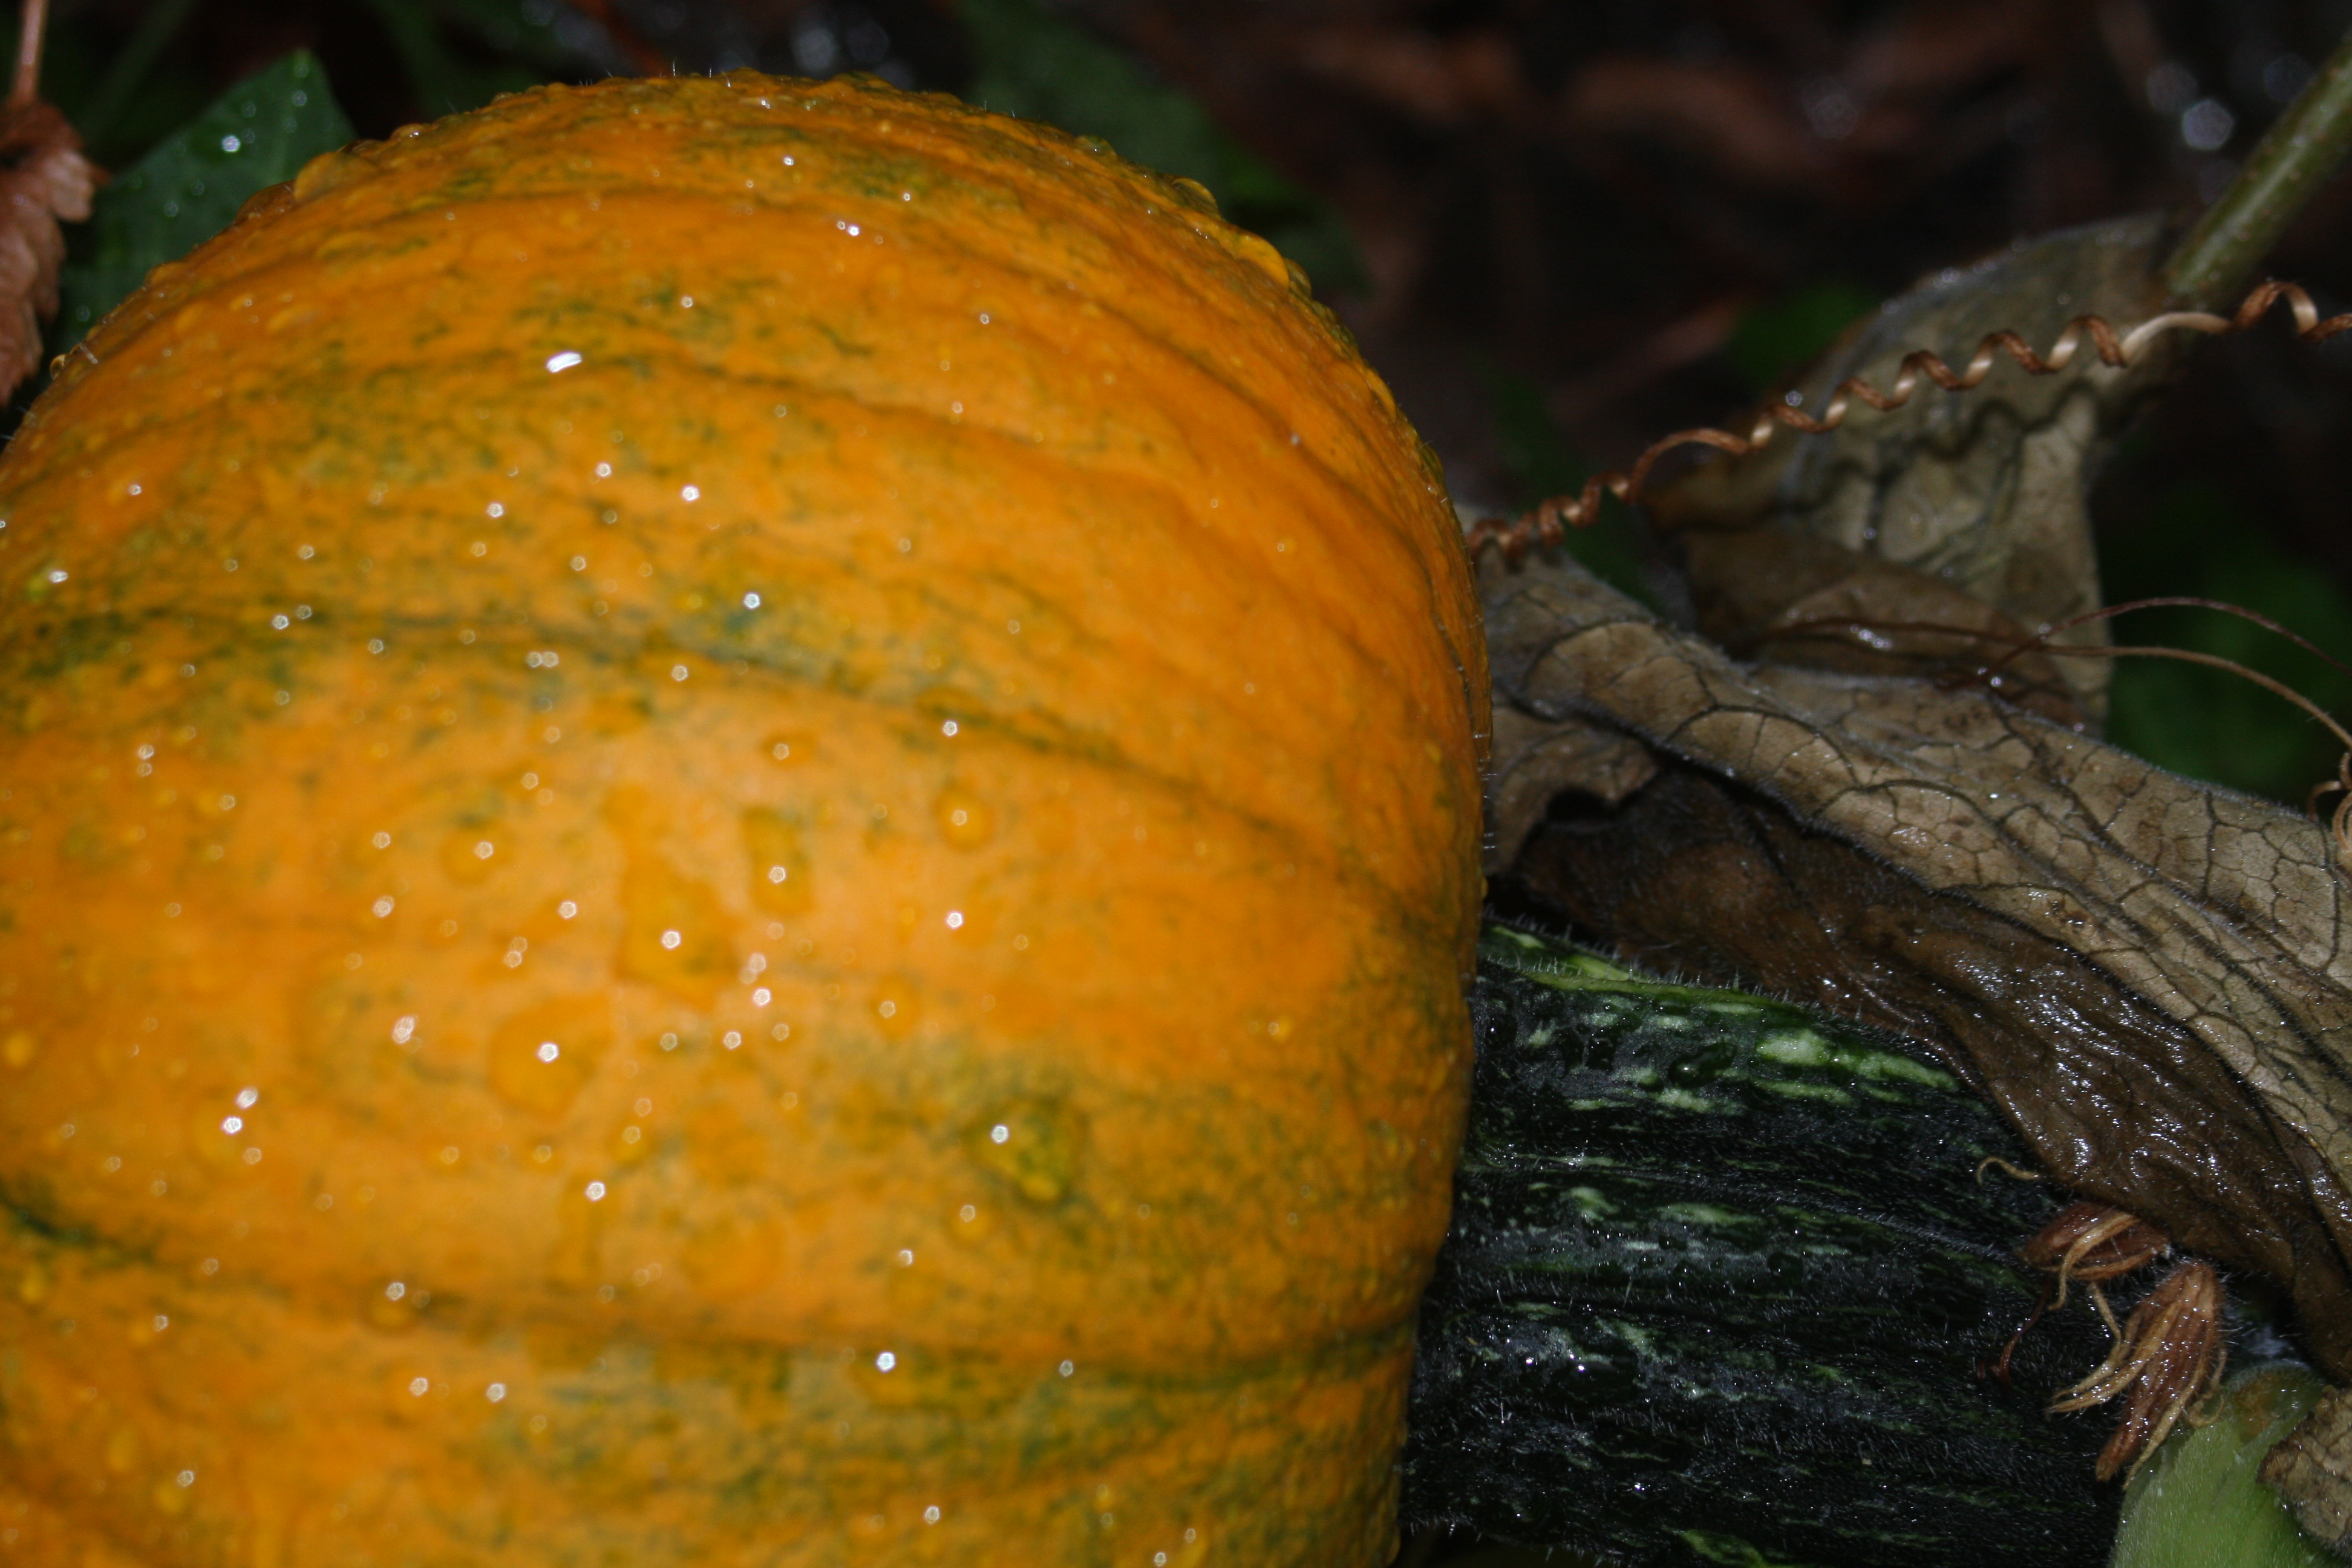 pumpkin covered in raindrops